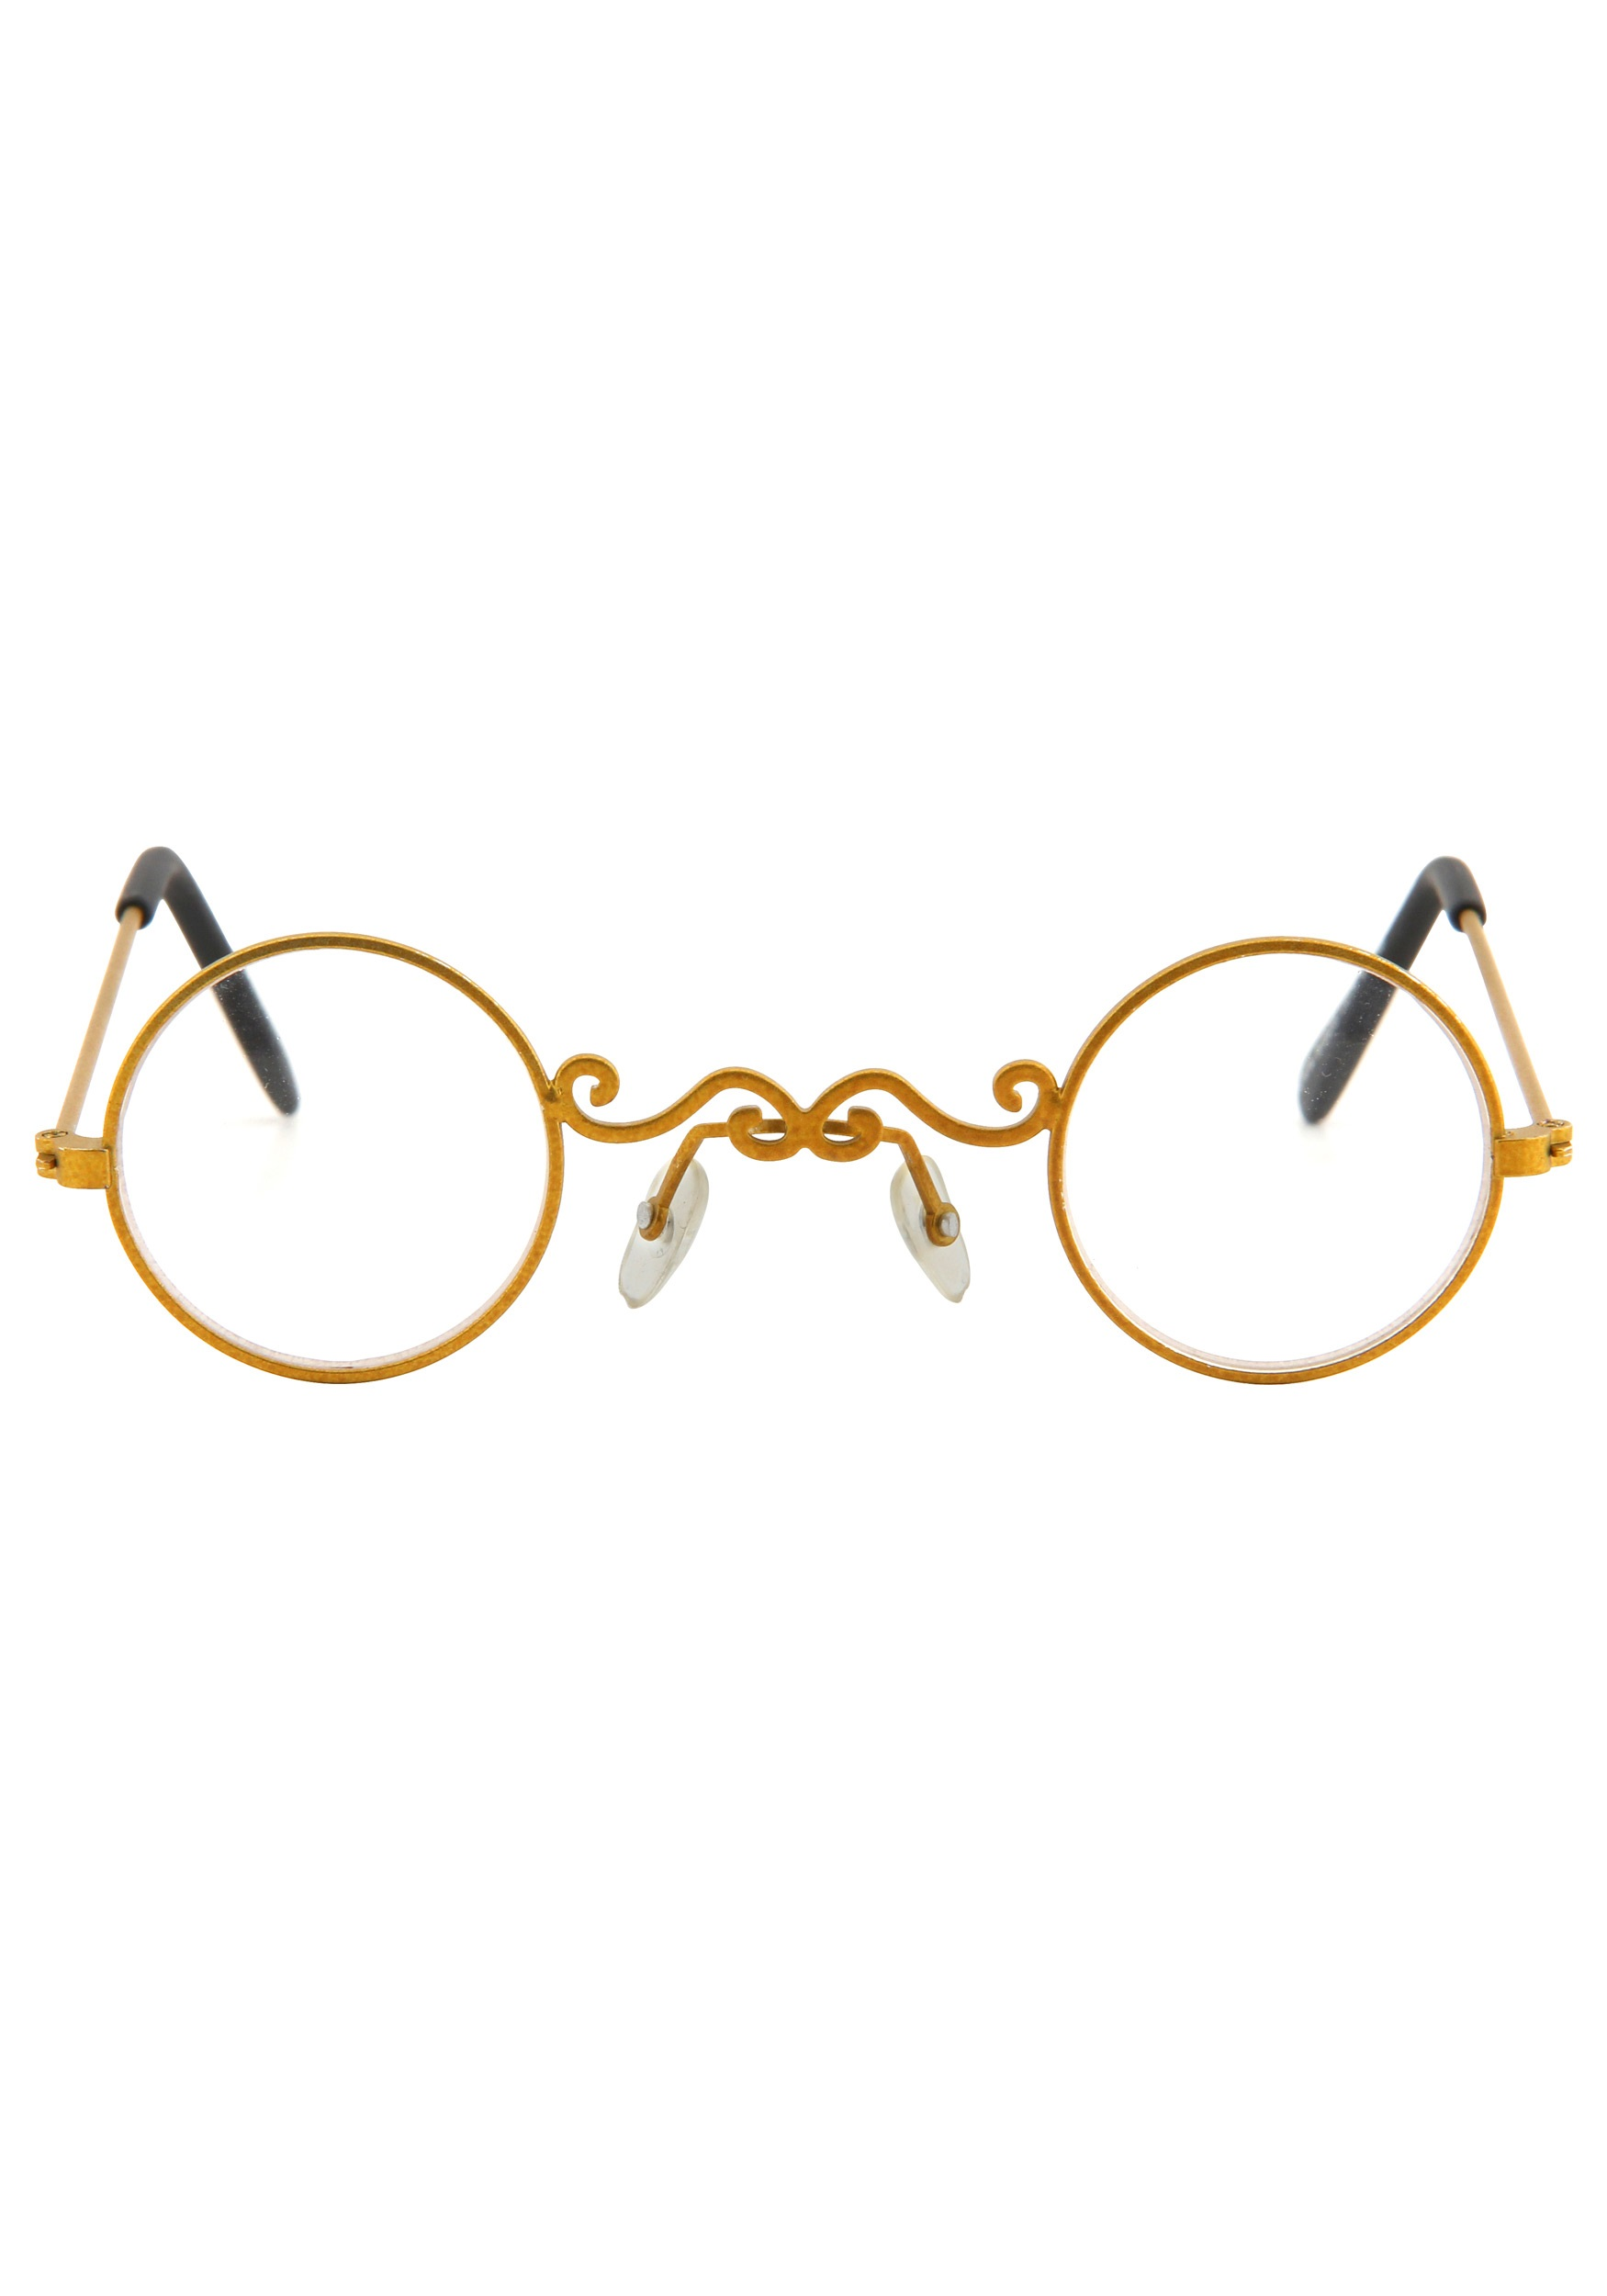 Pot Ou0027 Gold Glasses  sc 1 st  Halloween Costumes & Pot Ou0027 Gold Glasses - Halloween Costumes